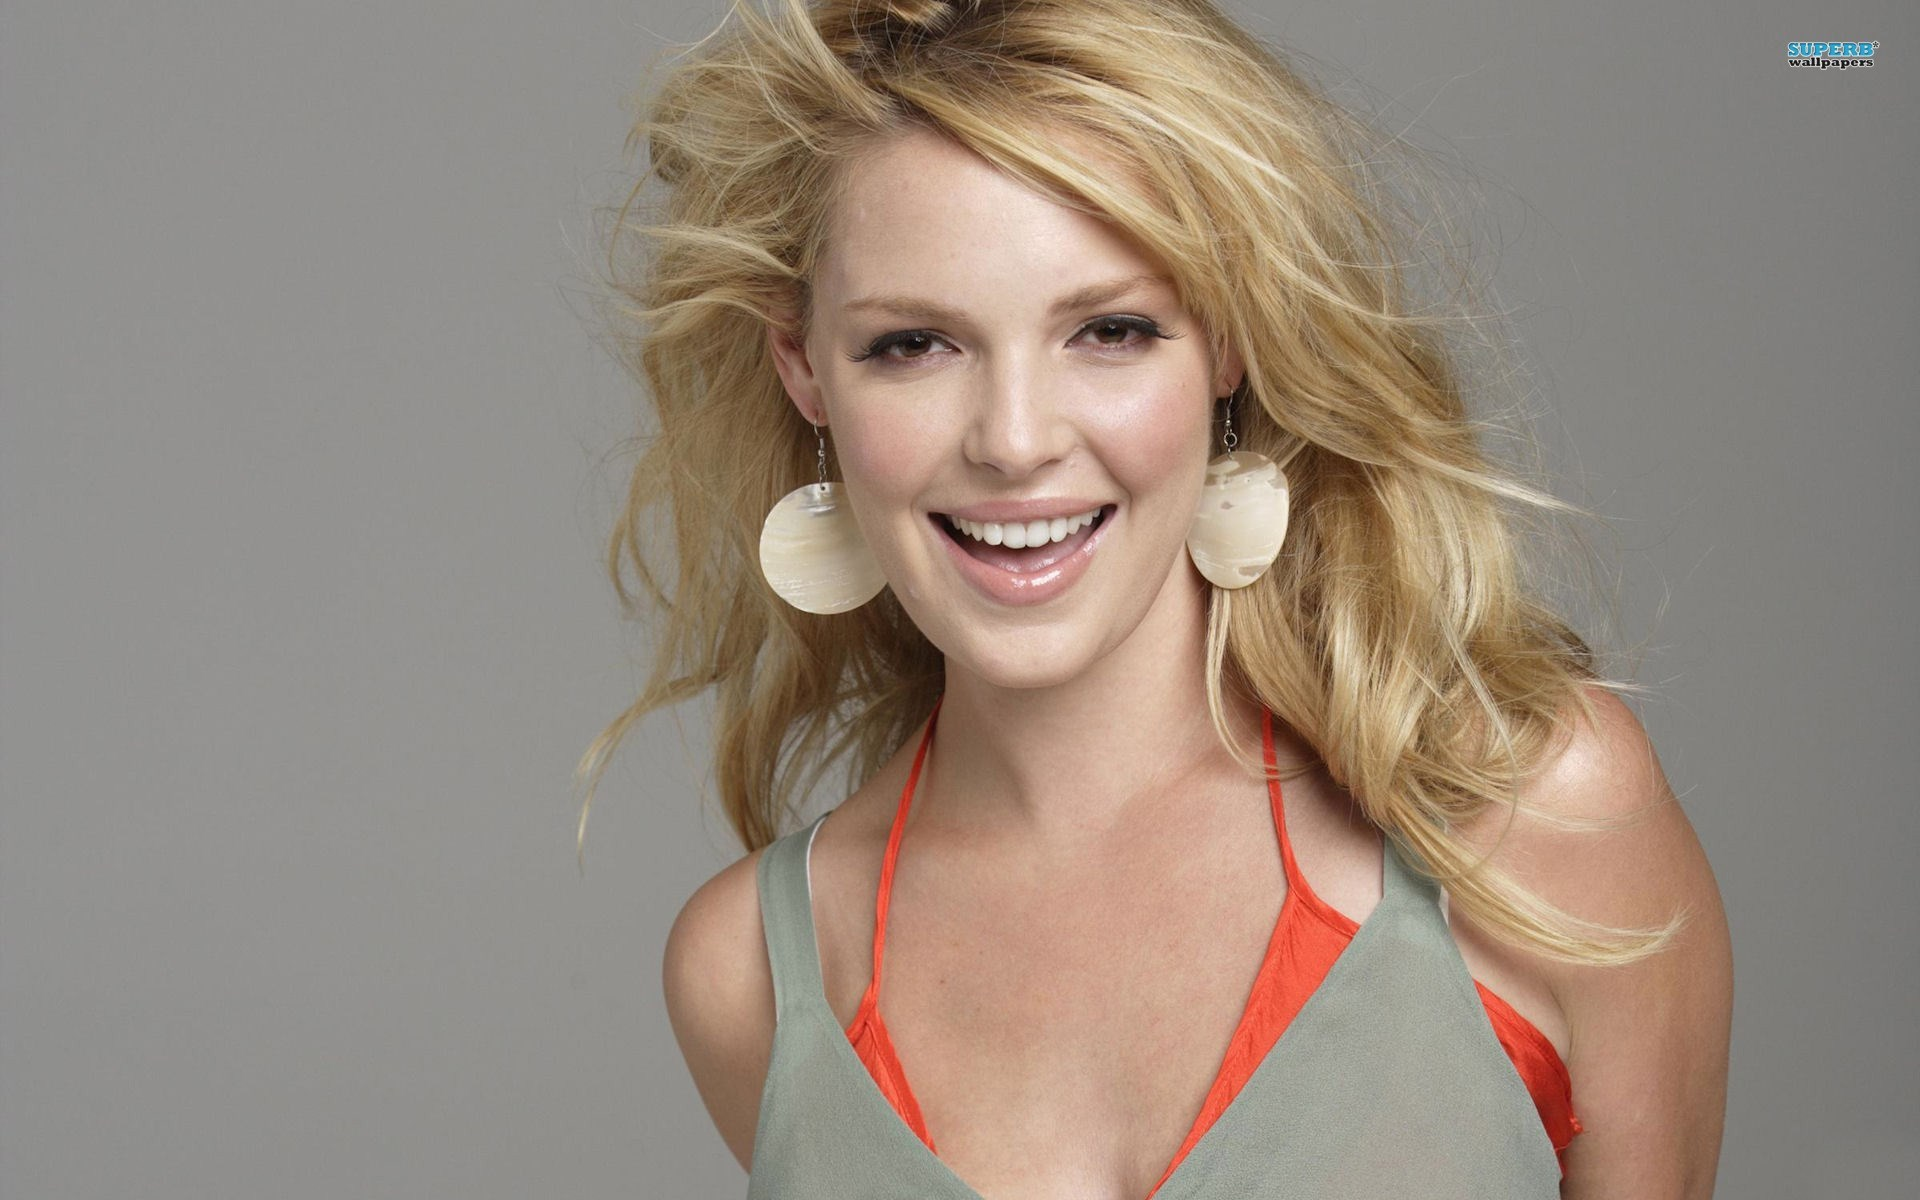 Katherine Heigl | Known people - famous people news and biographies